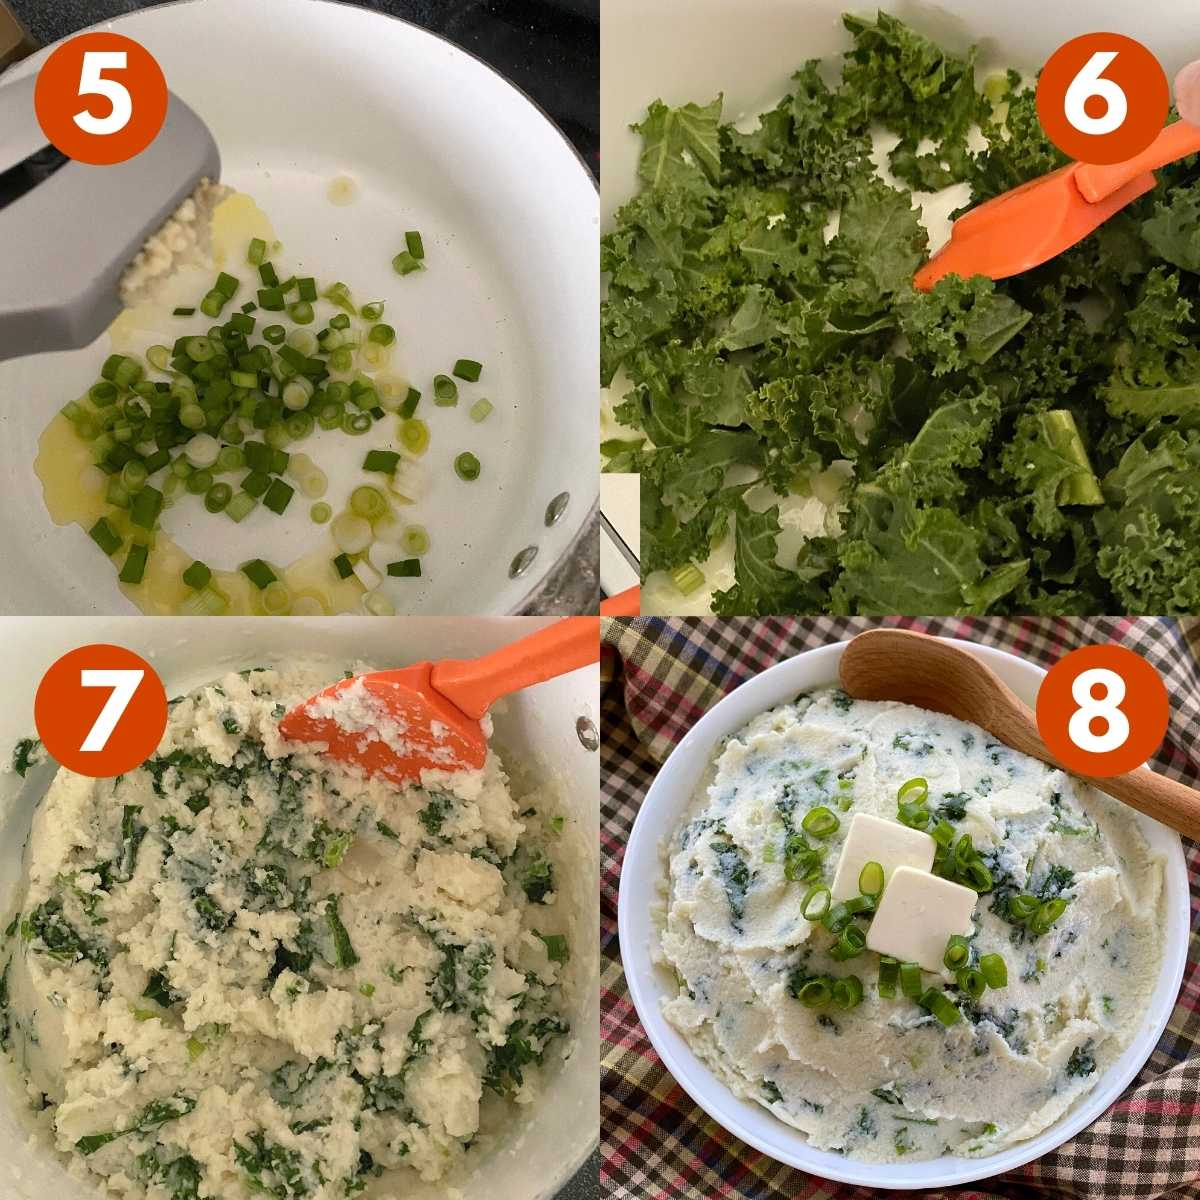 Graphic with numbered steps to finish the recipe with sauteed spring onions and kale.